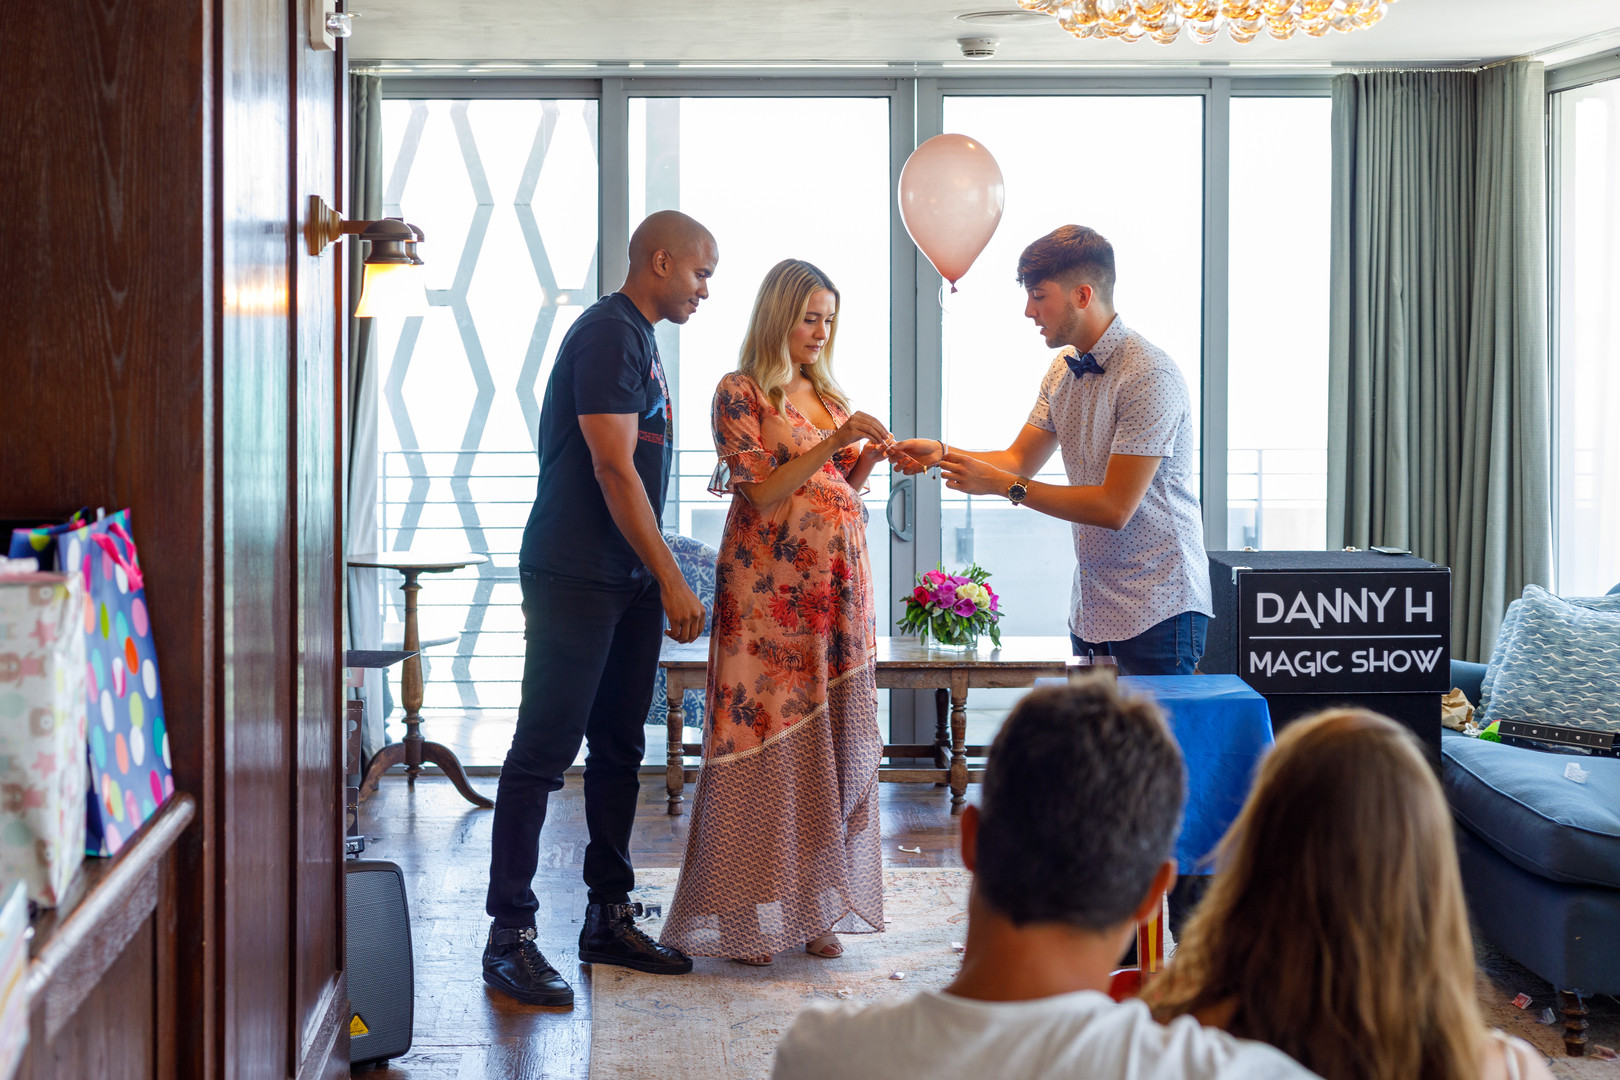 Danny performing for Gabrielle & Sanford's baby shower!